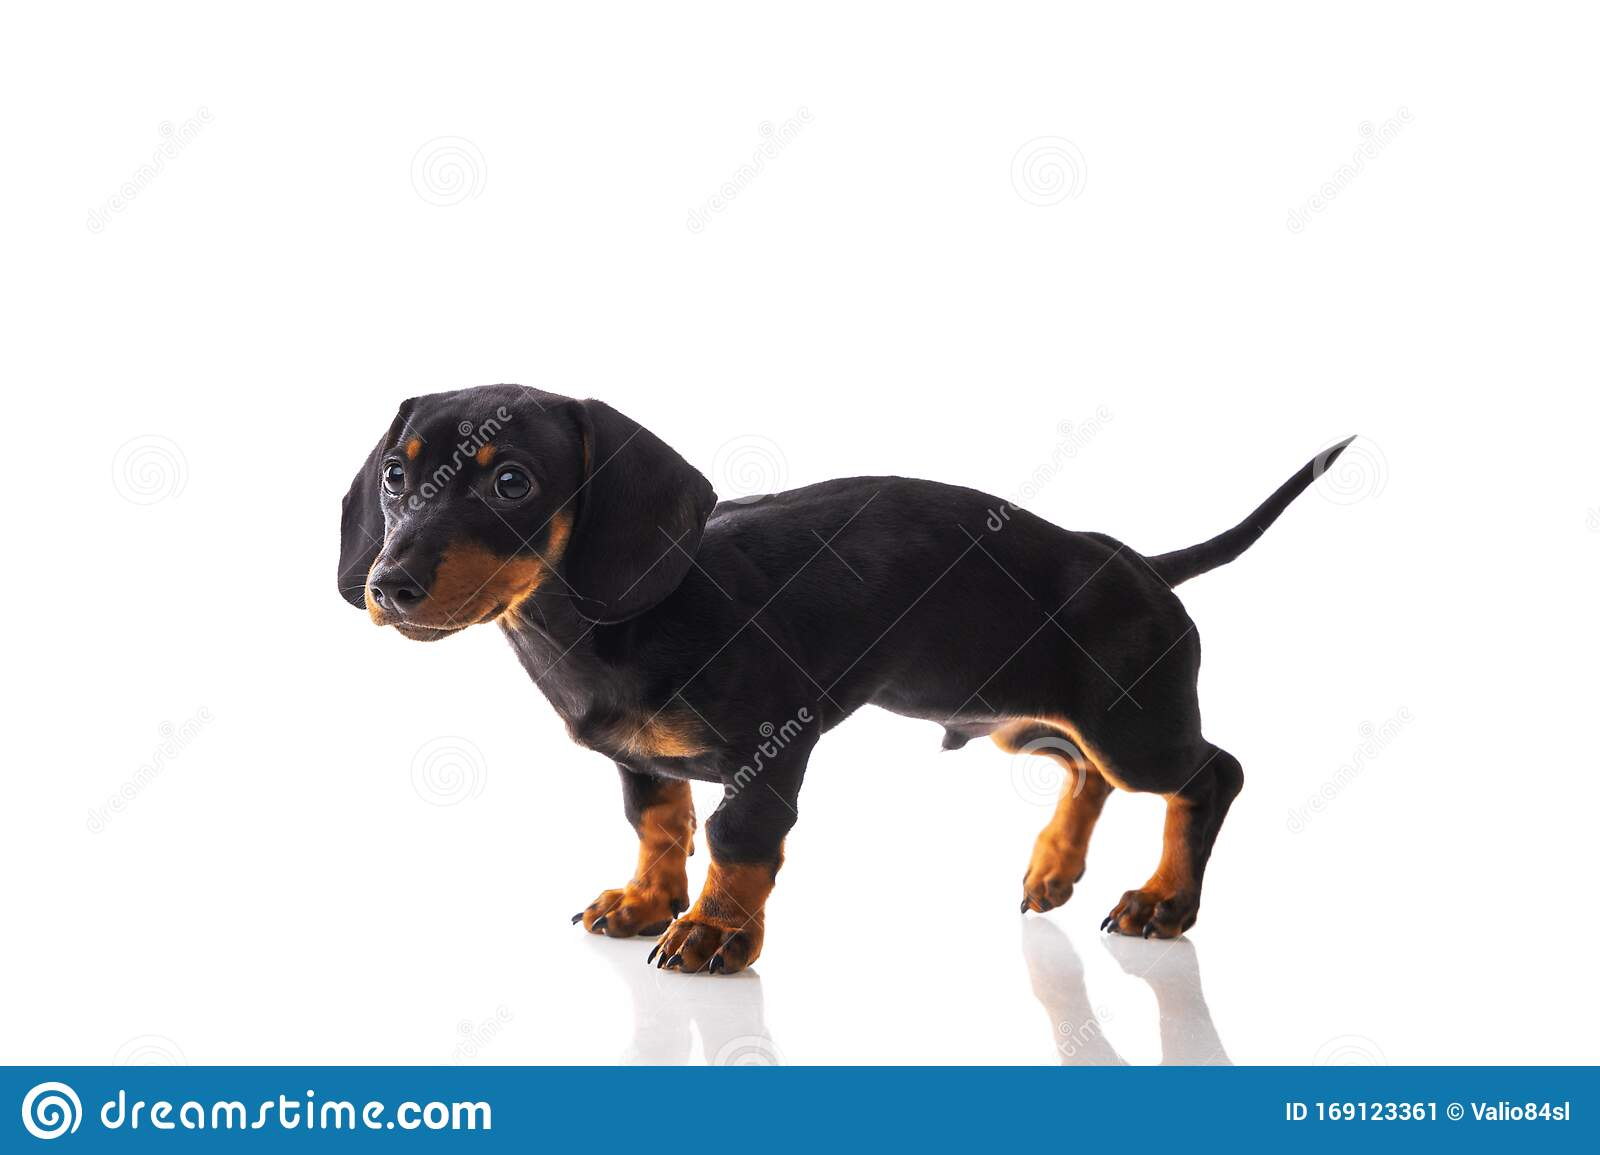 Funny Sausage Dog Dachshund Puppy Posing On White Background Stock Image Image Of Portrait Looking 169123361